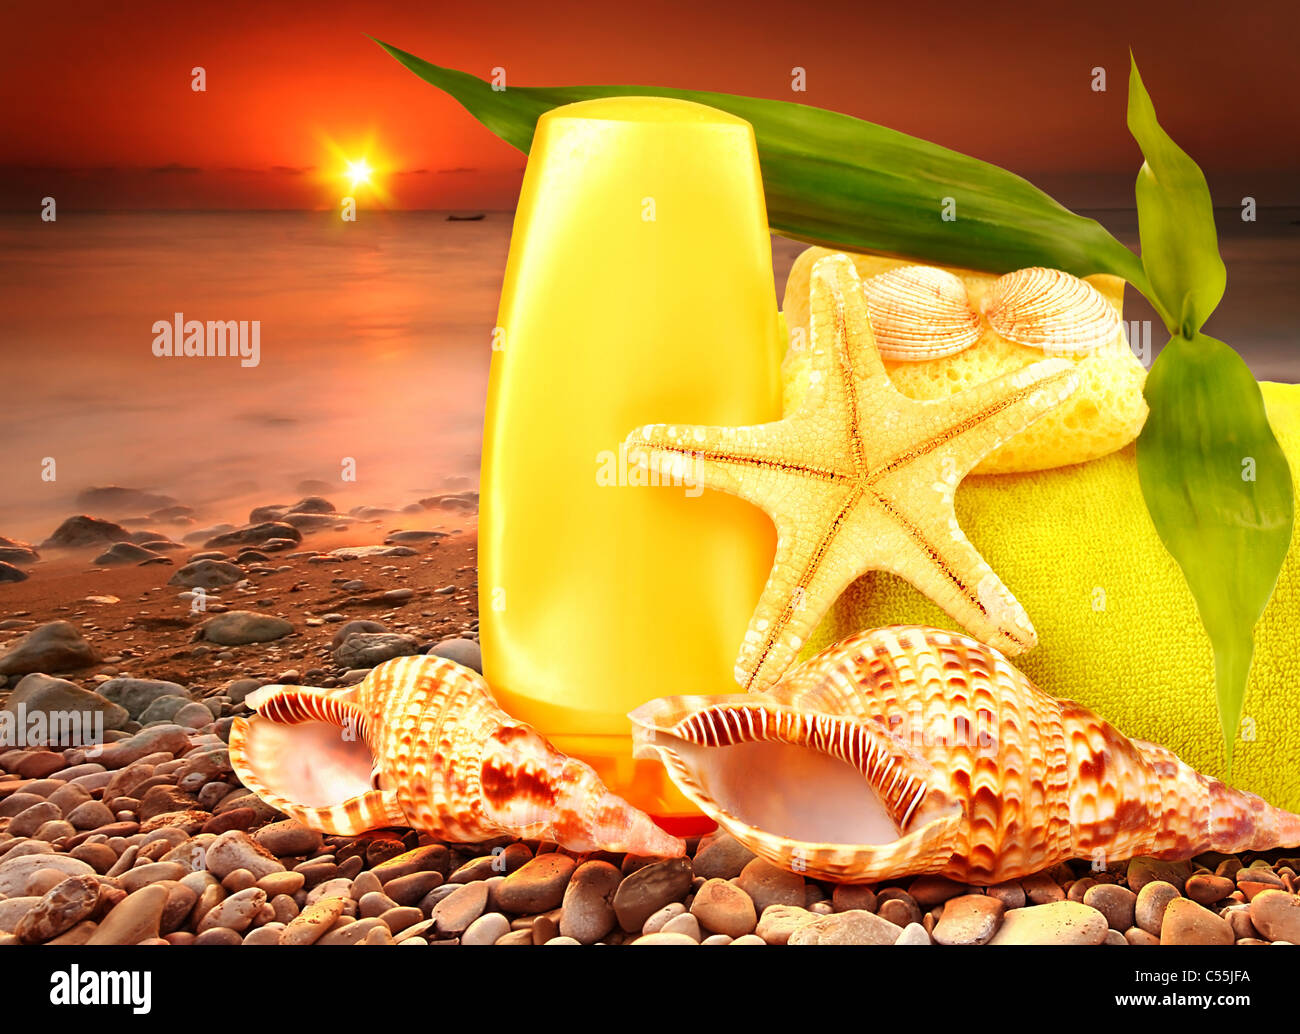 Beach items over sea sunset conceptual image of summertime vacation & holidays - Stock Image